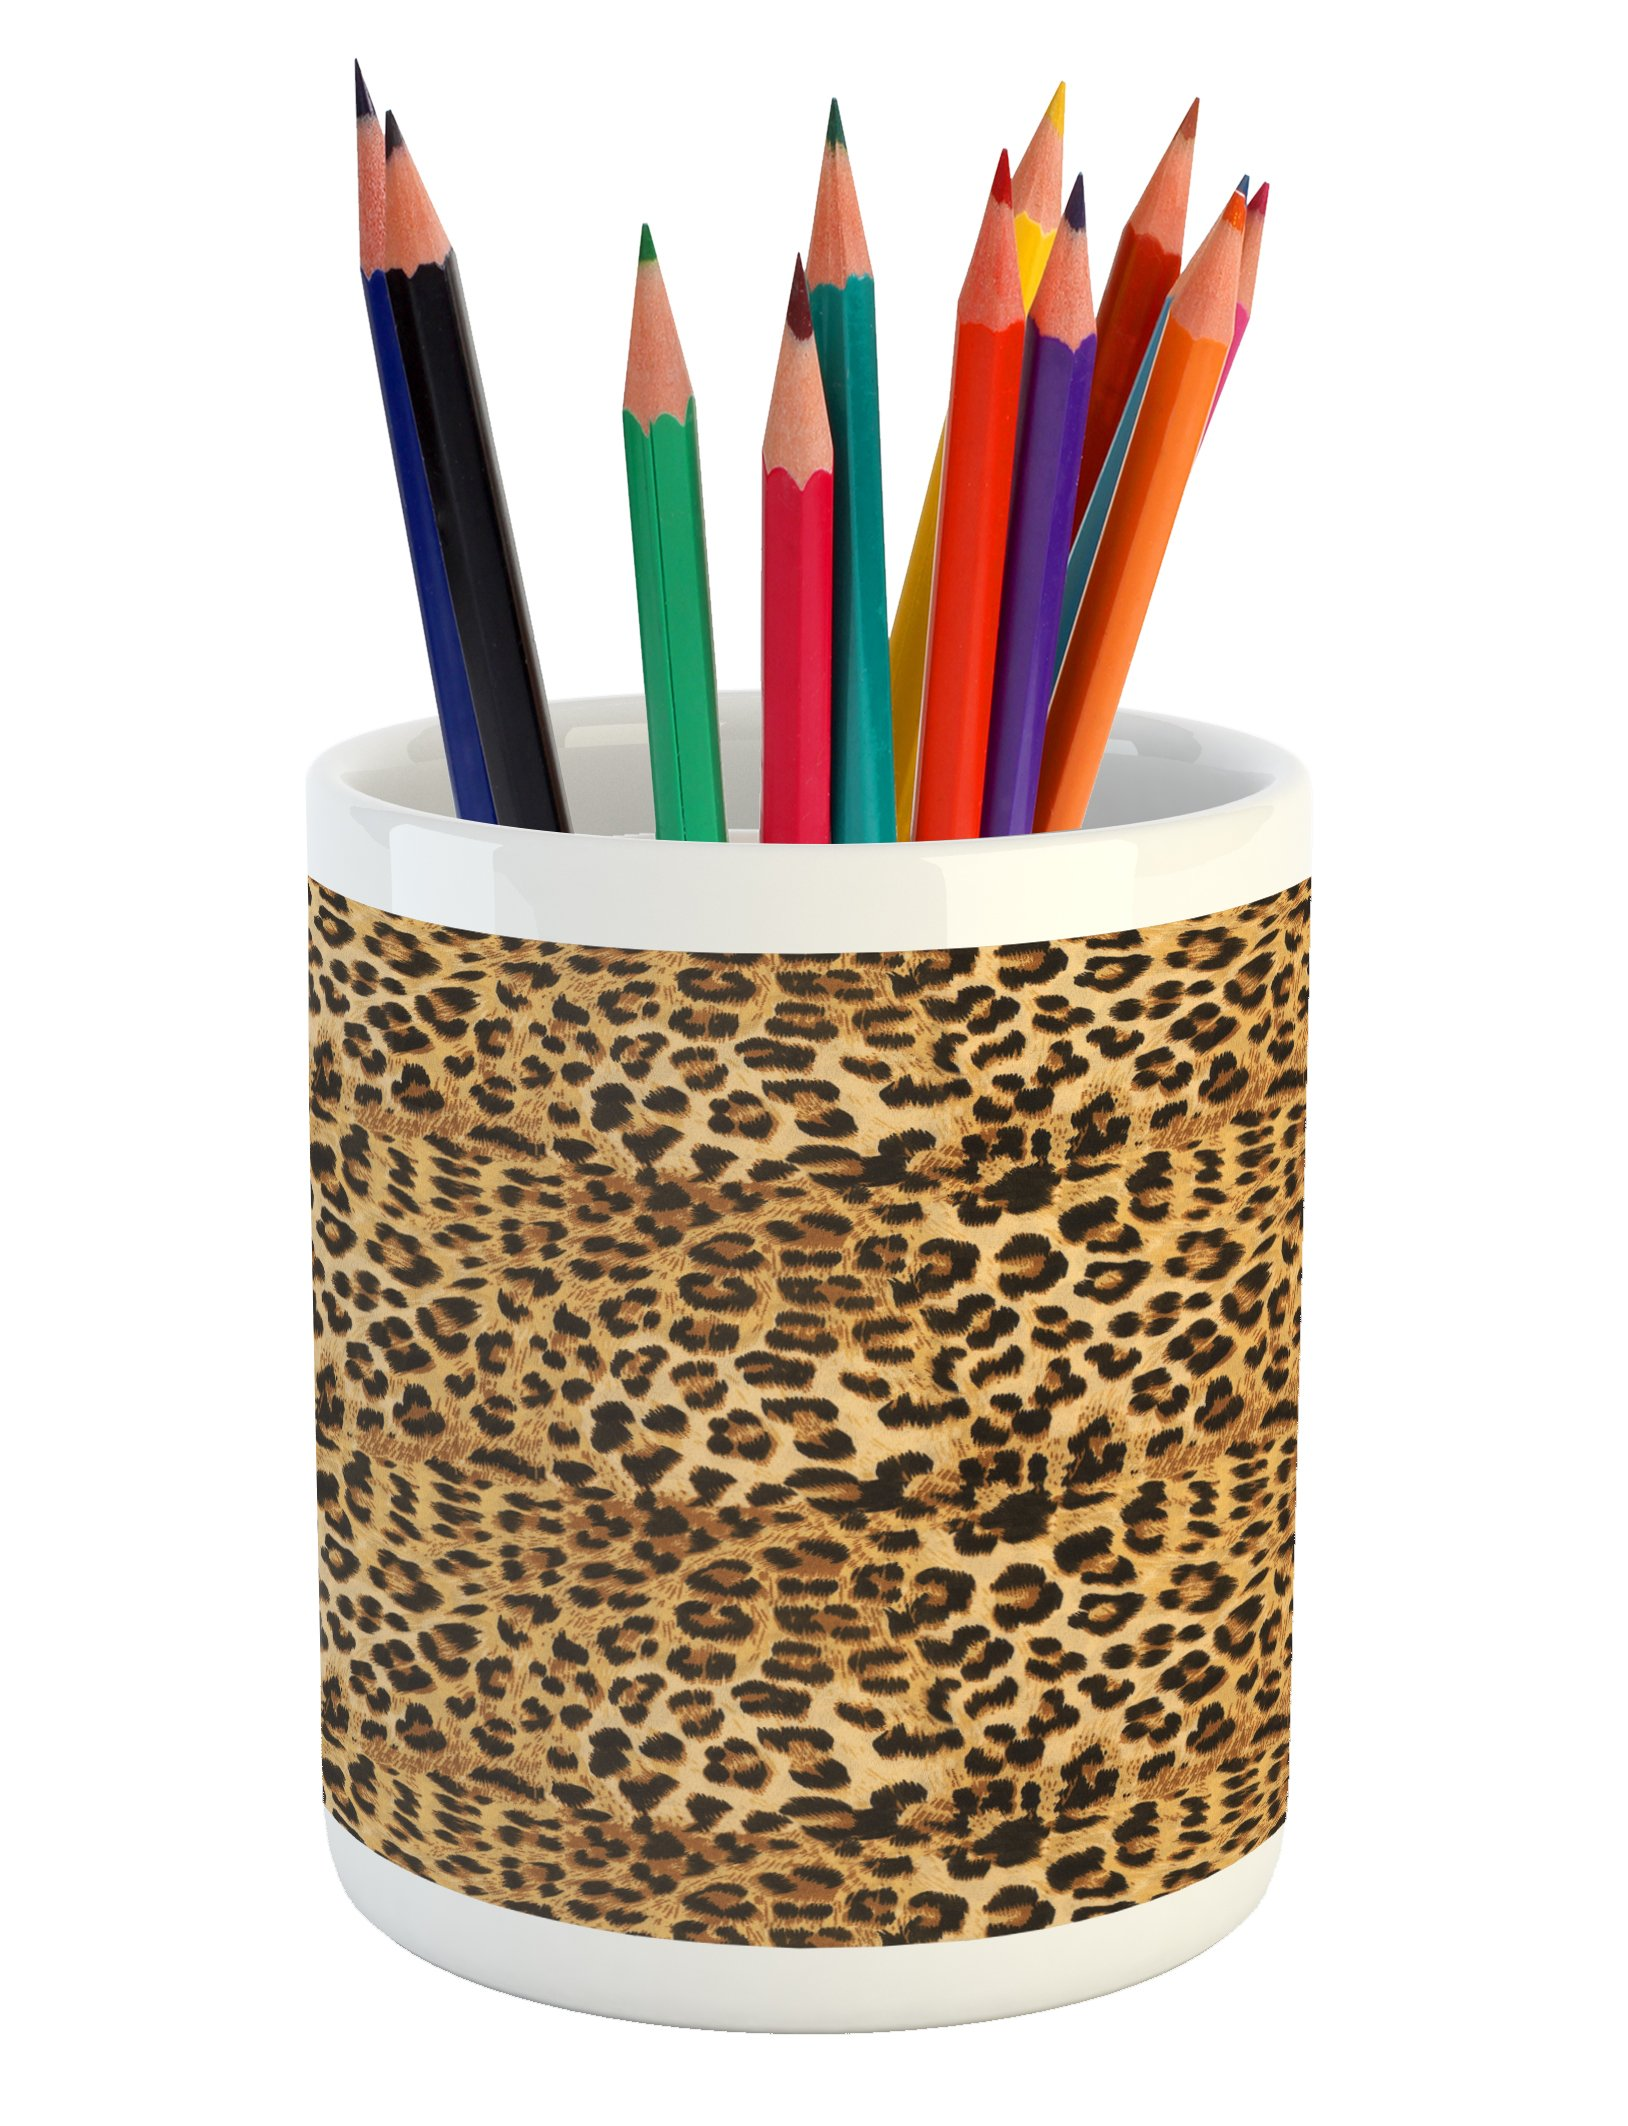 Ambesonne Brown Pencil Pen Holder, Leopard Print Animal Skin Digital Printed Wild African Safari Themed Spotted Pattern Art, Printed Ceramic Pencil Pen Holder for Desk Office Accessory, Brown